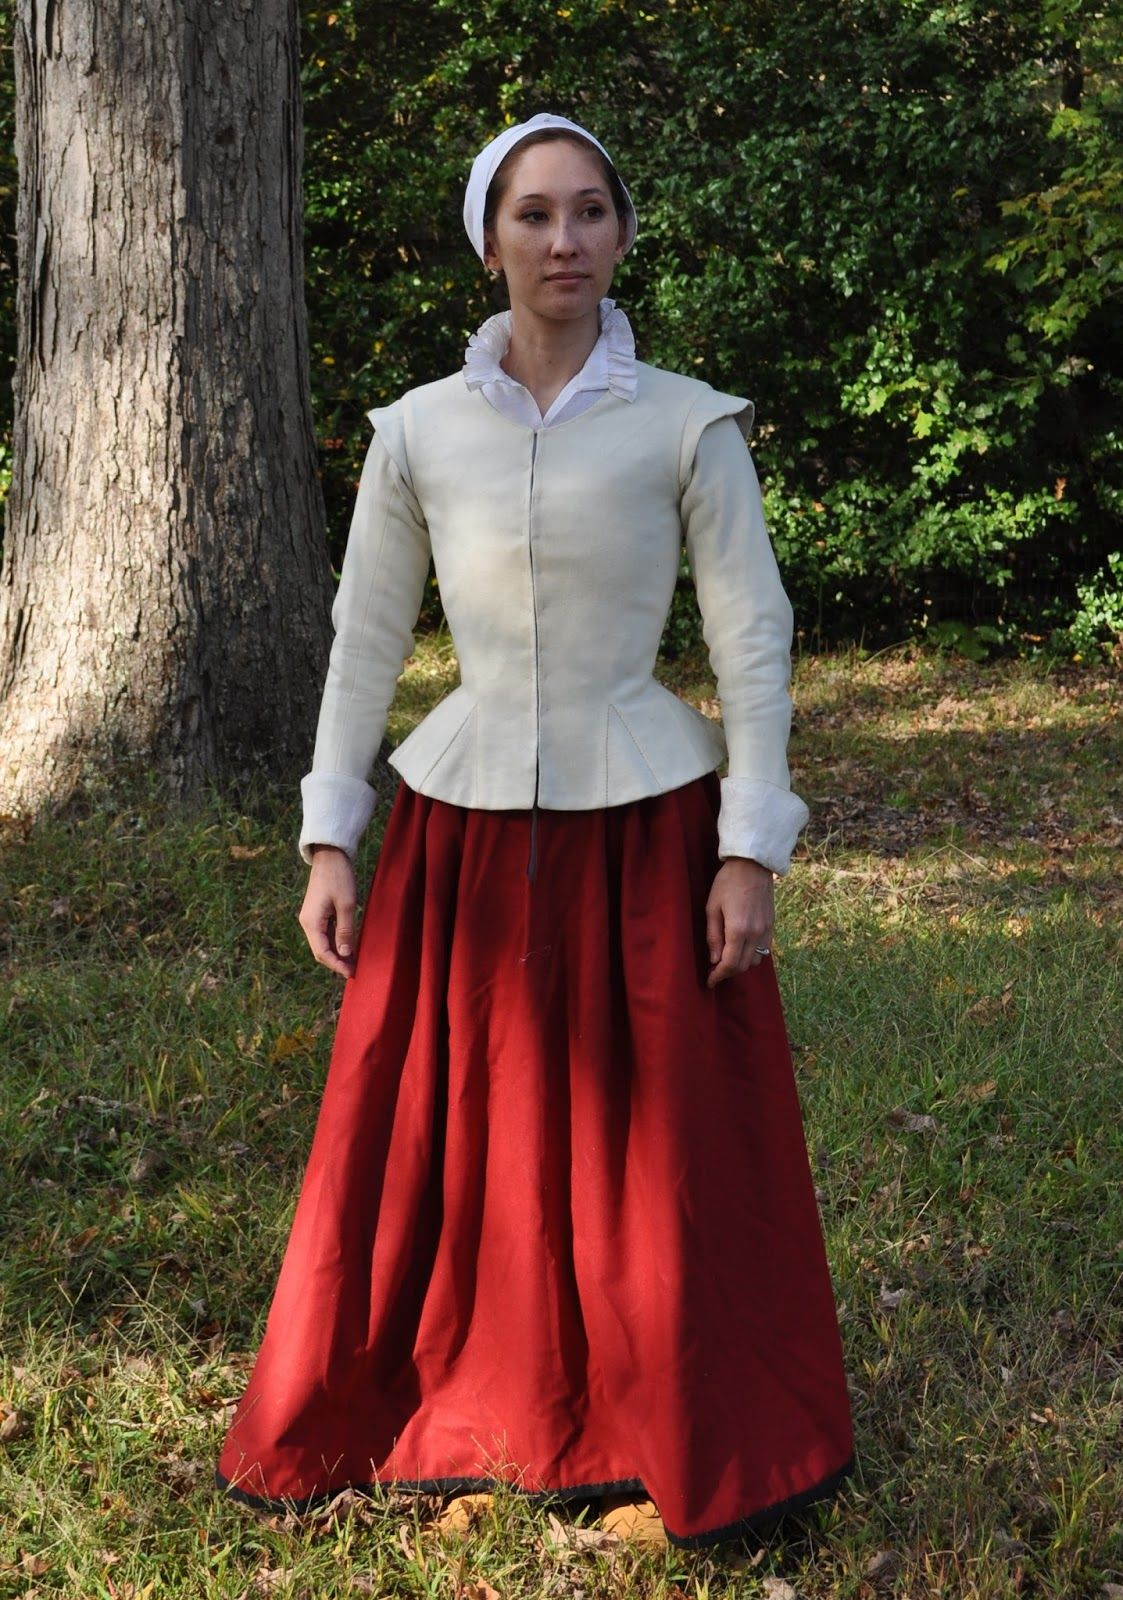 What clothes did people wear in the 17th Century?